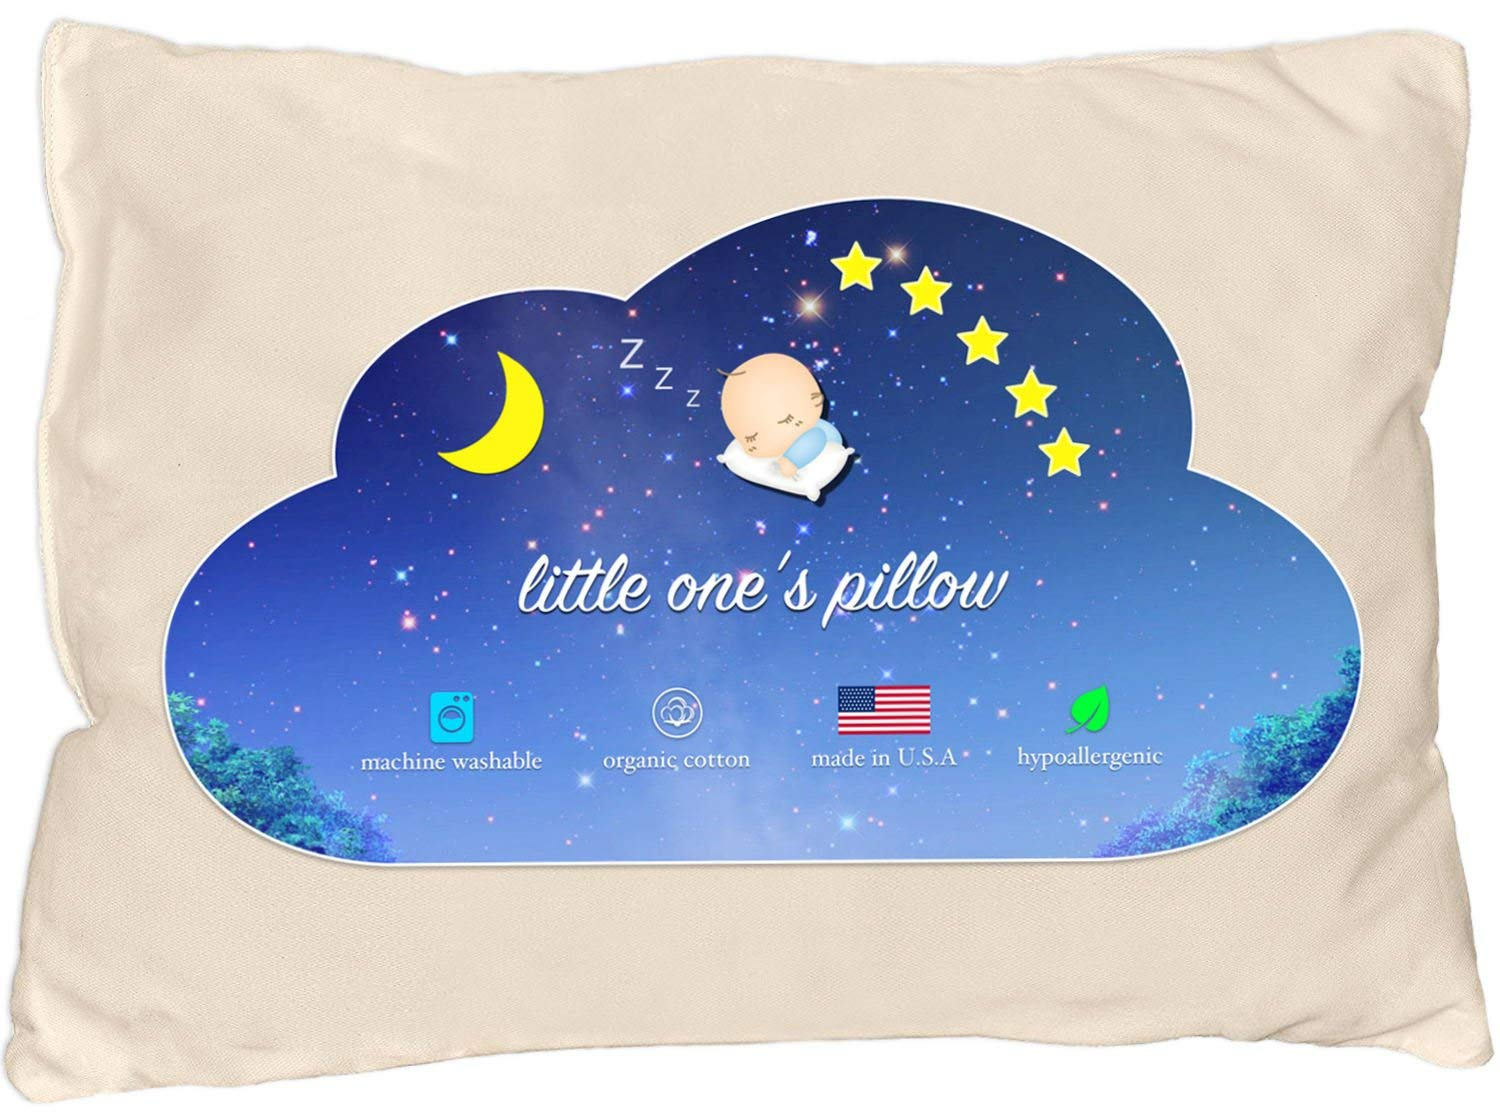 Little One's Pillow Flat Pillow Review by www.snoremagazine.com